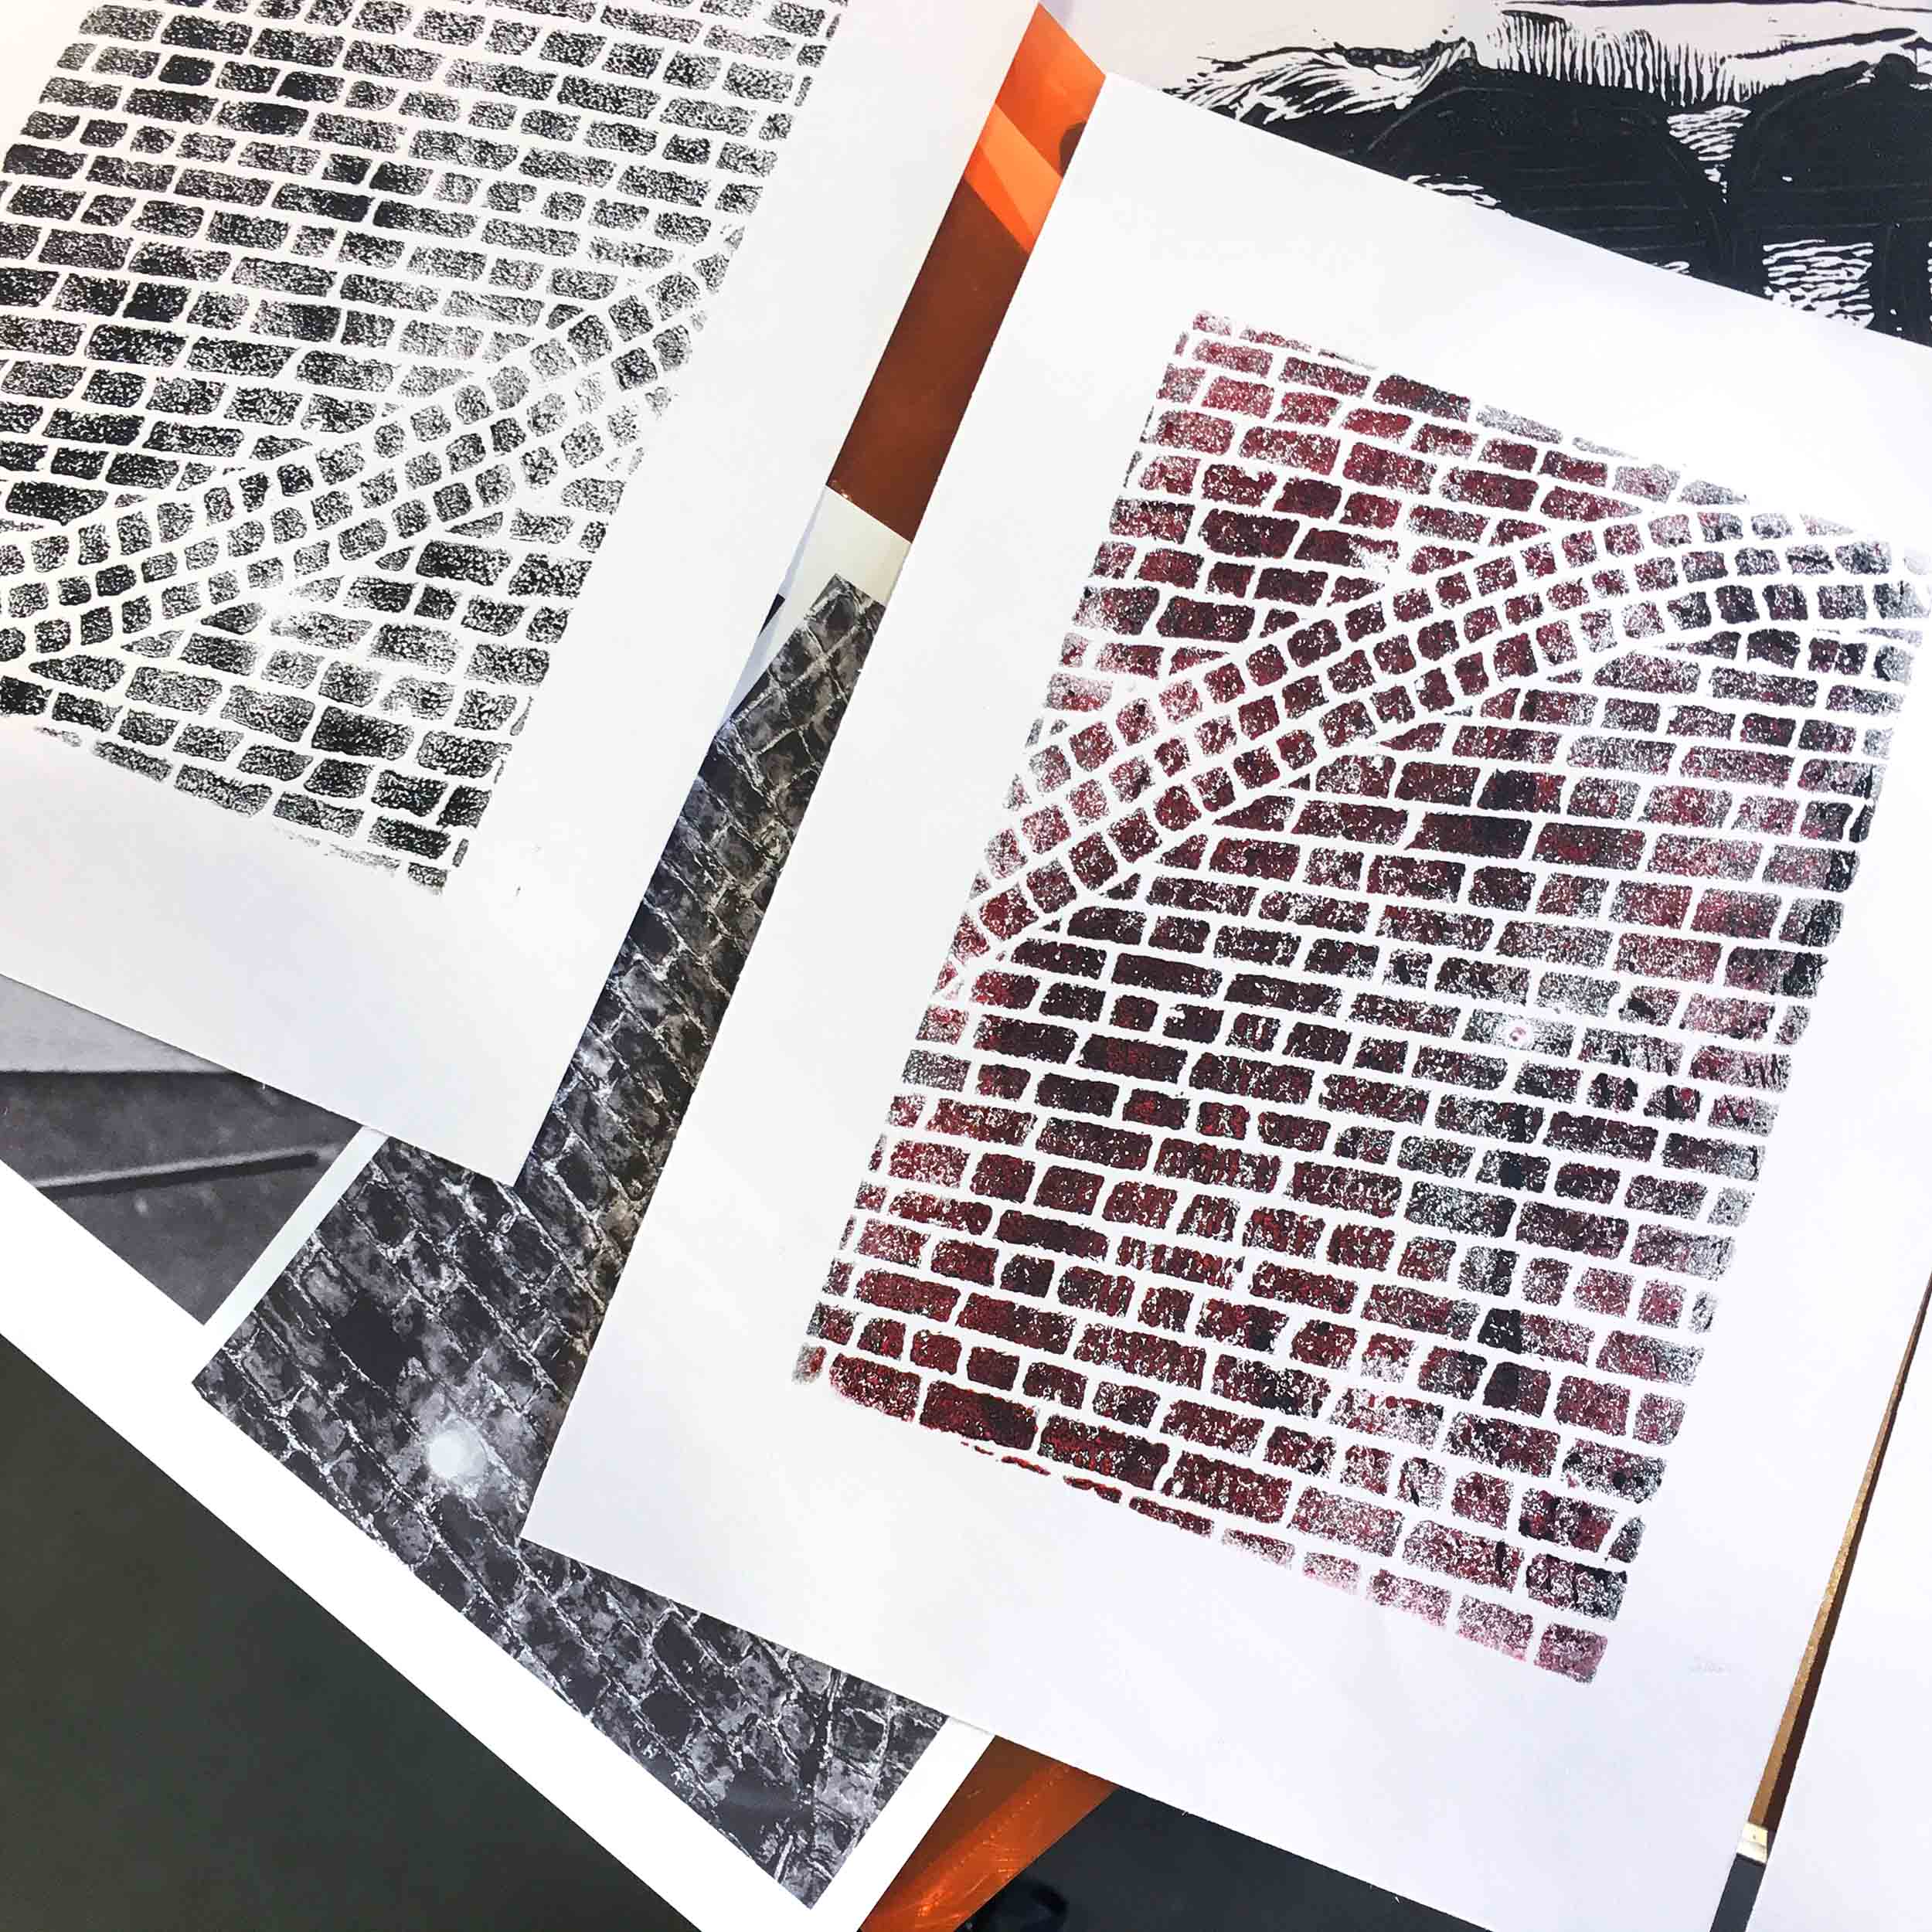 Walking, photography & trace monoprinting